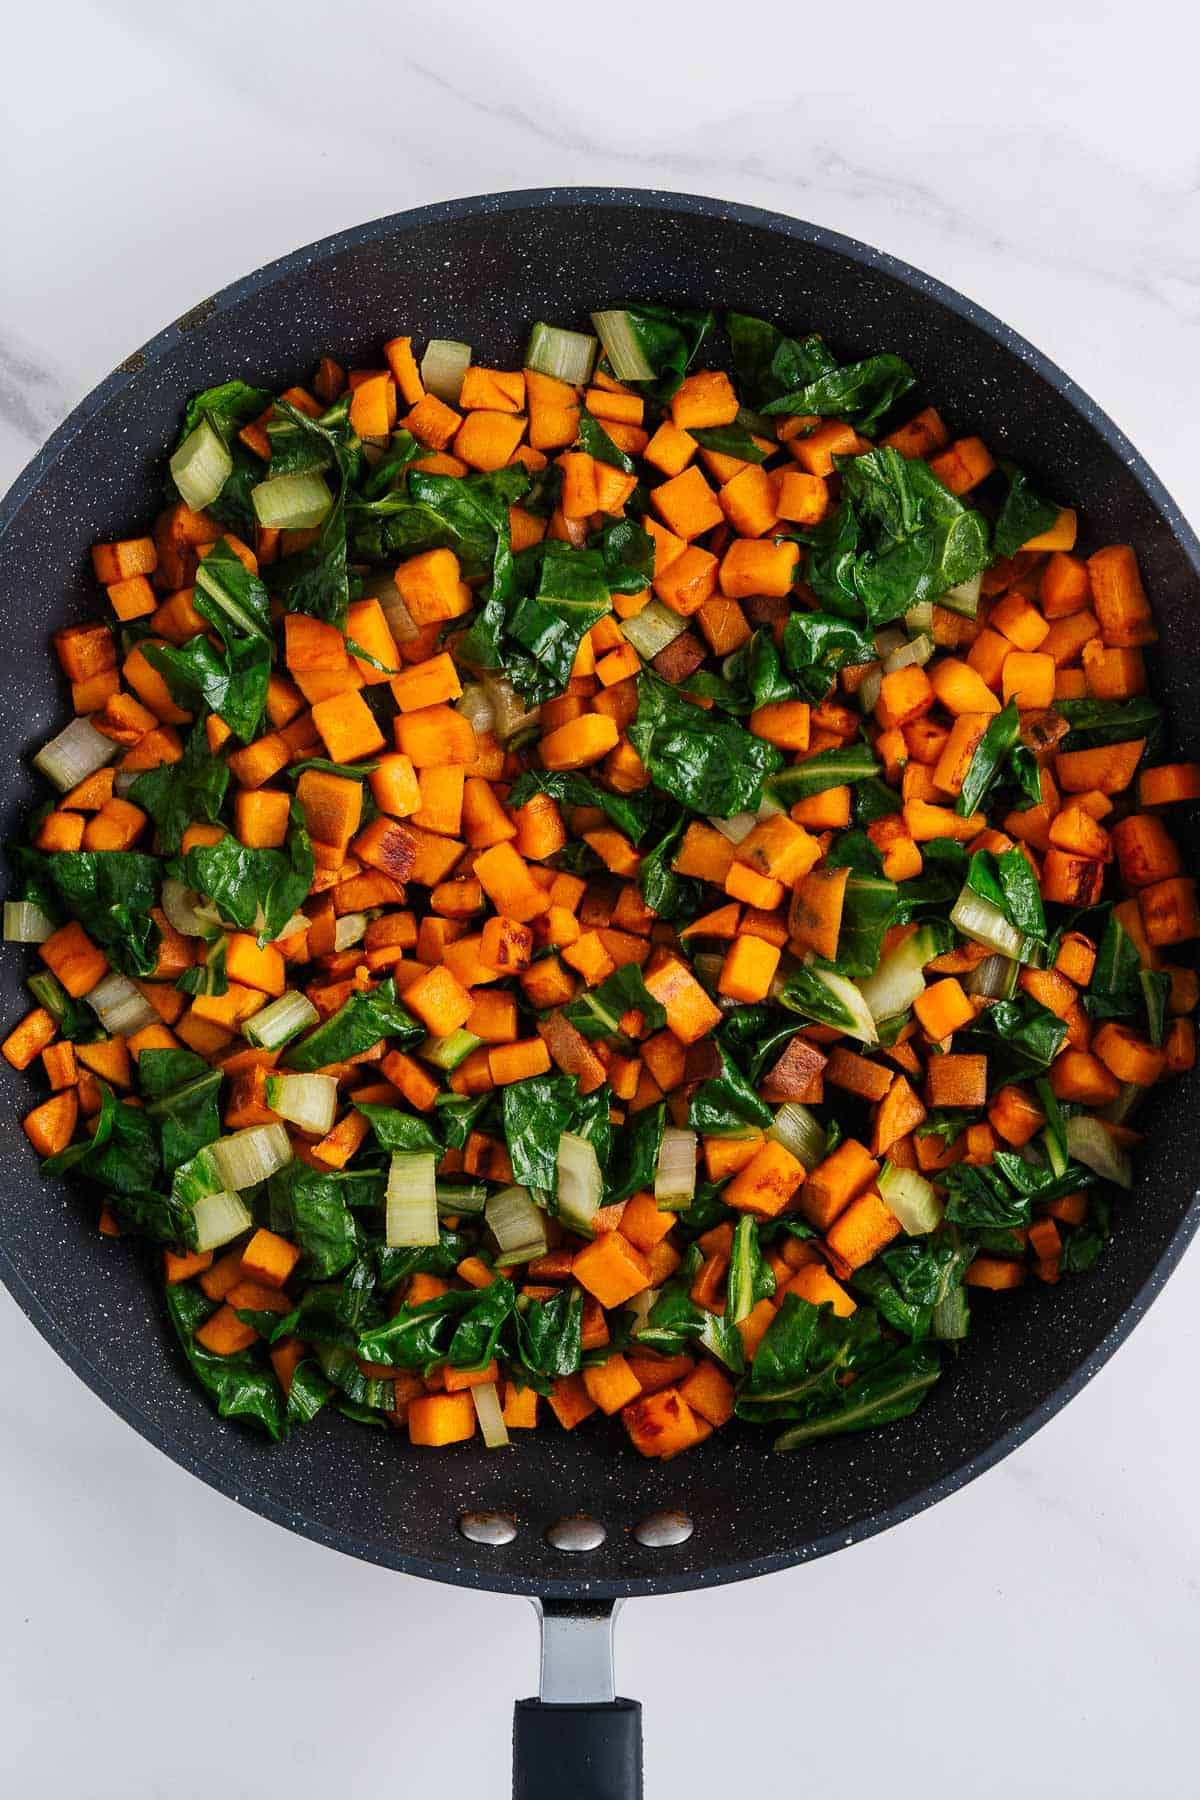 Cooked Sweet Potatoes and Collard Greens in a Skillet